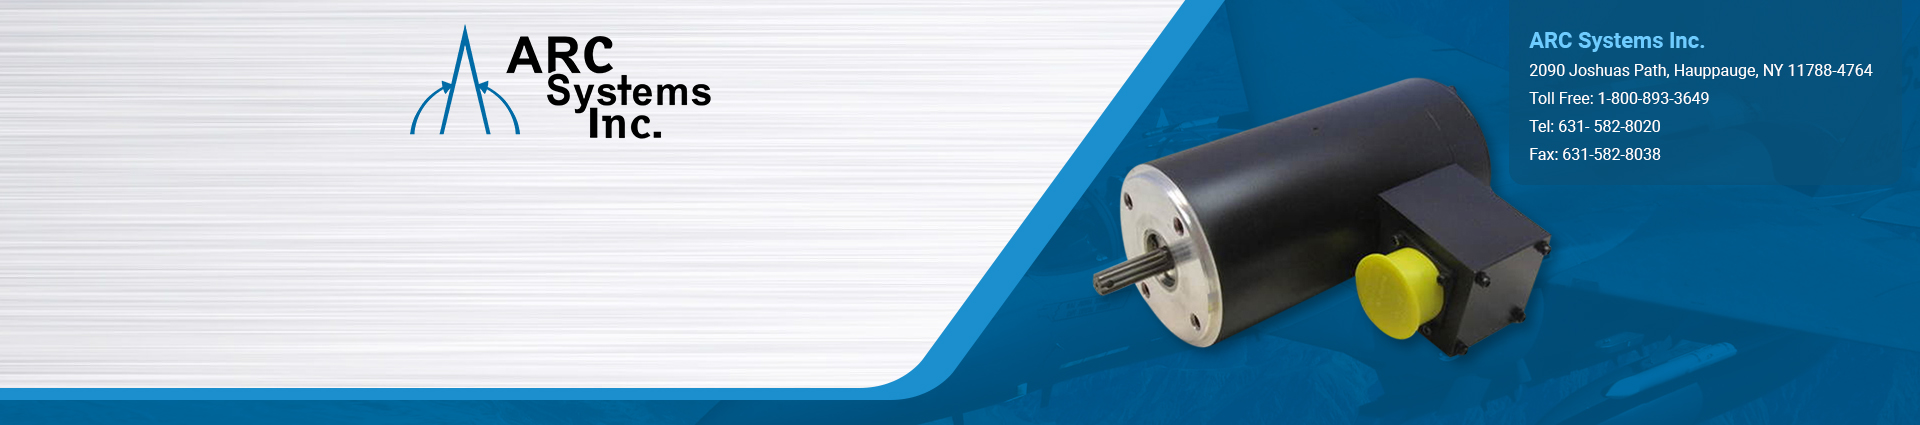 induction-motors ARC Systems Inc banner